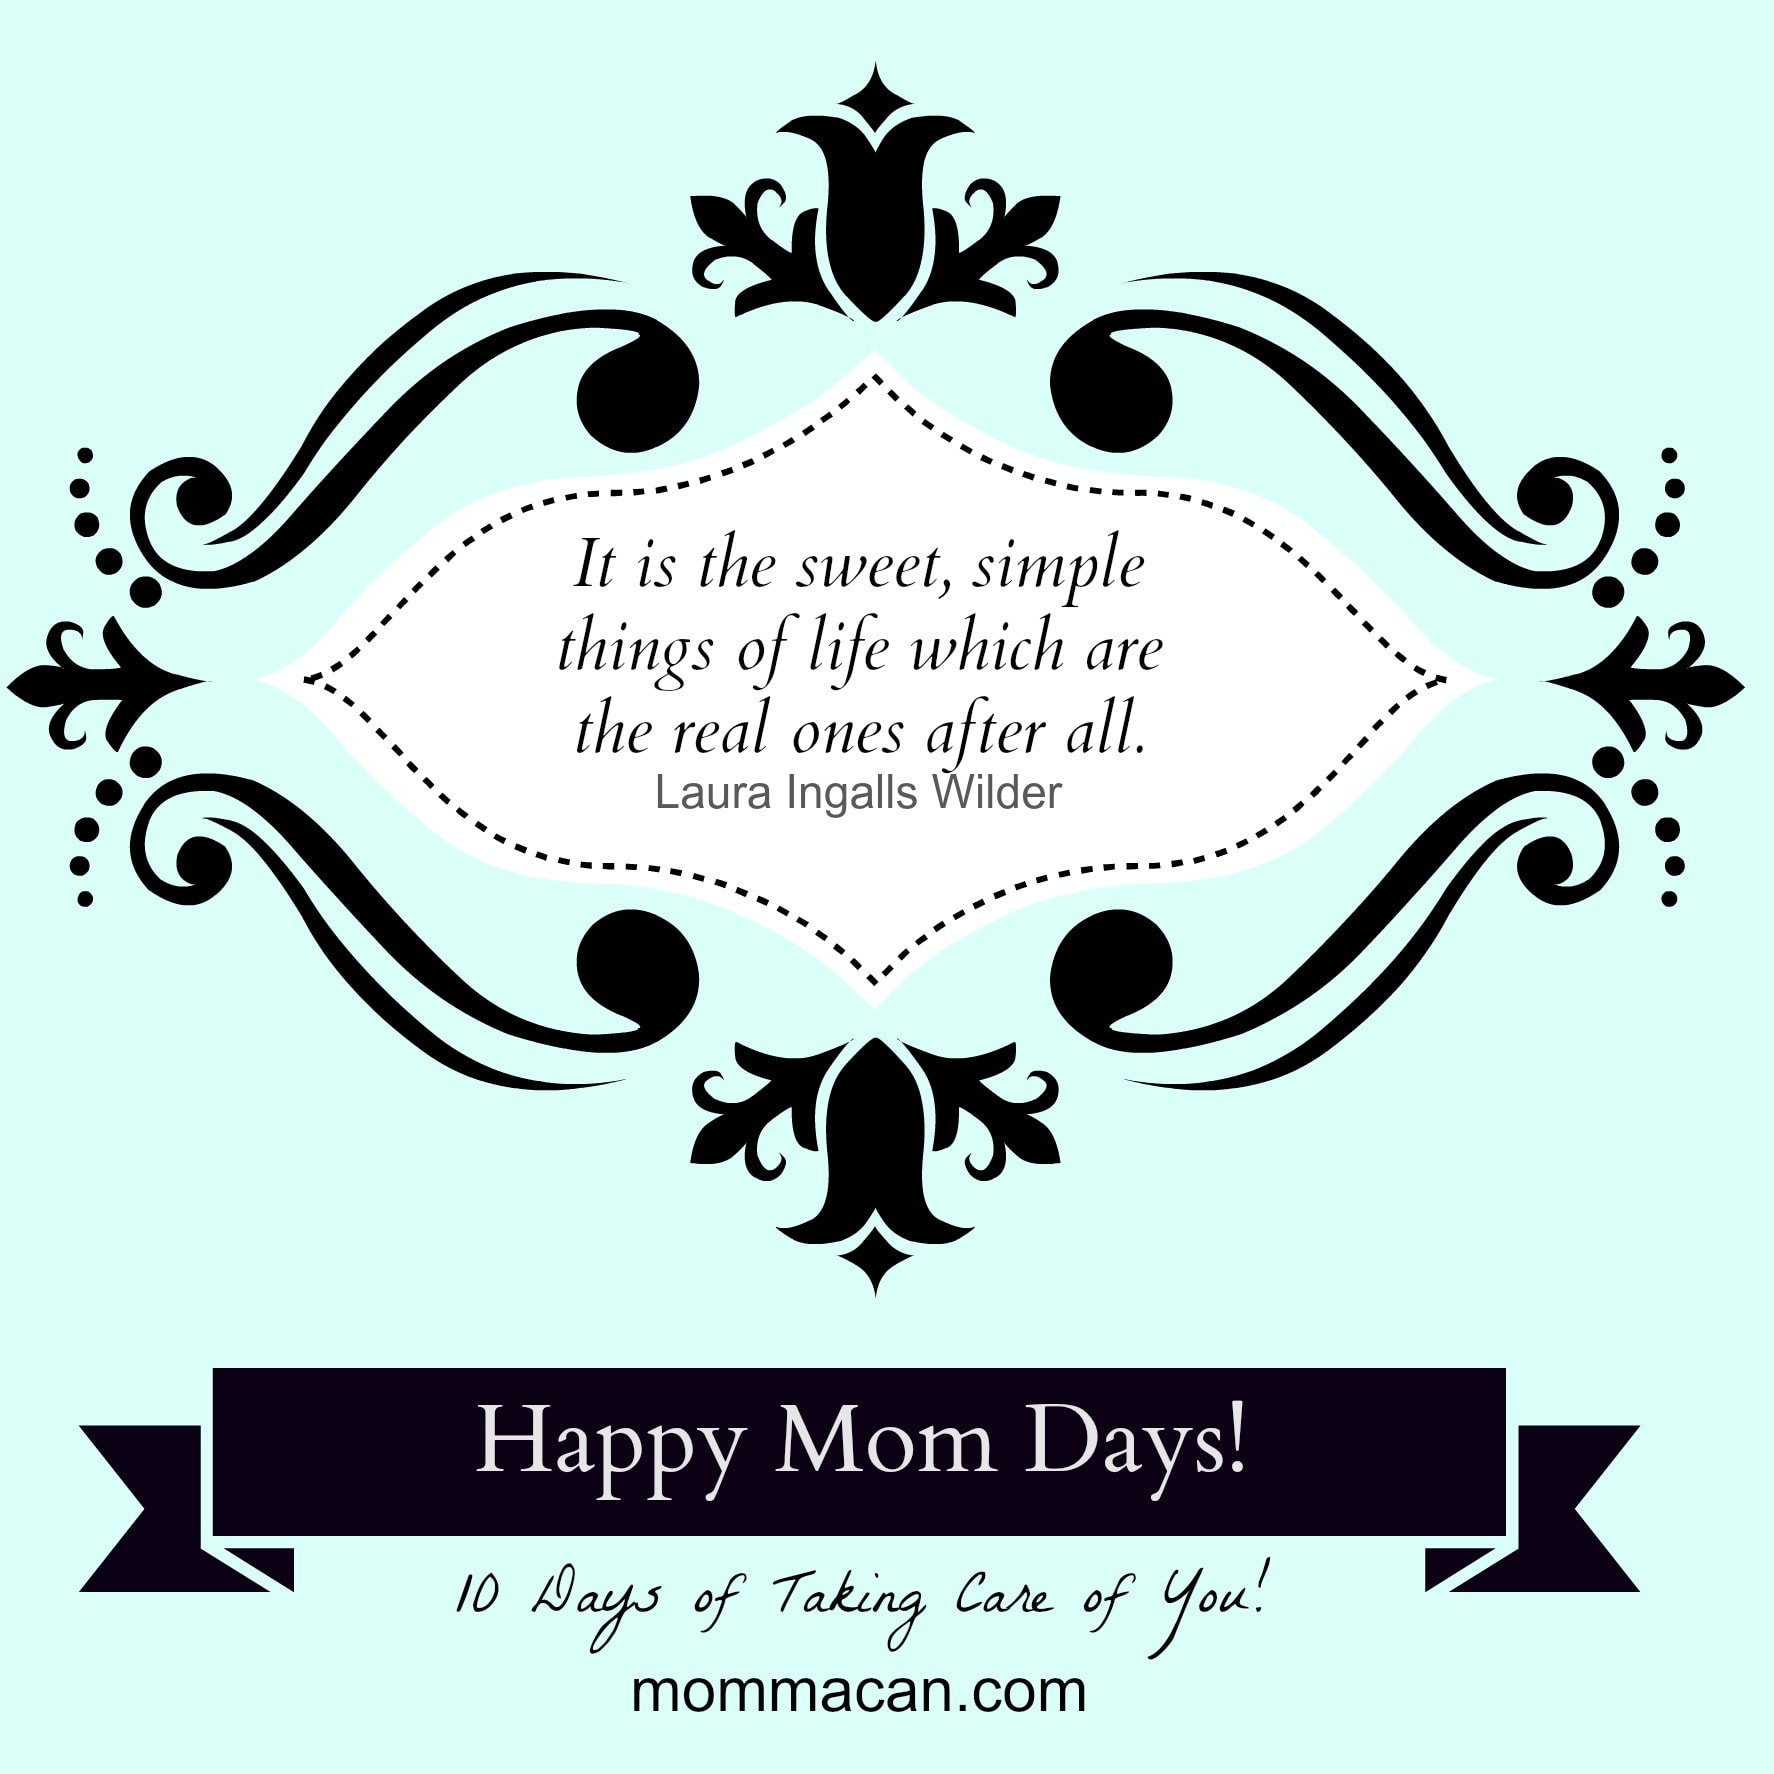 Happy Mom Days! It's The Little Things That Make Life Grand